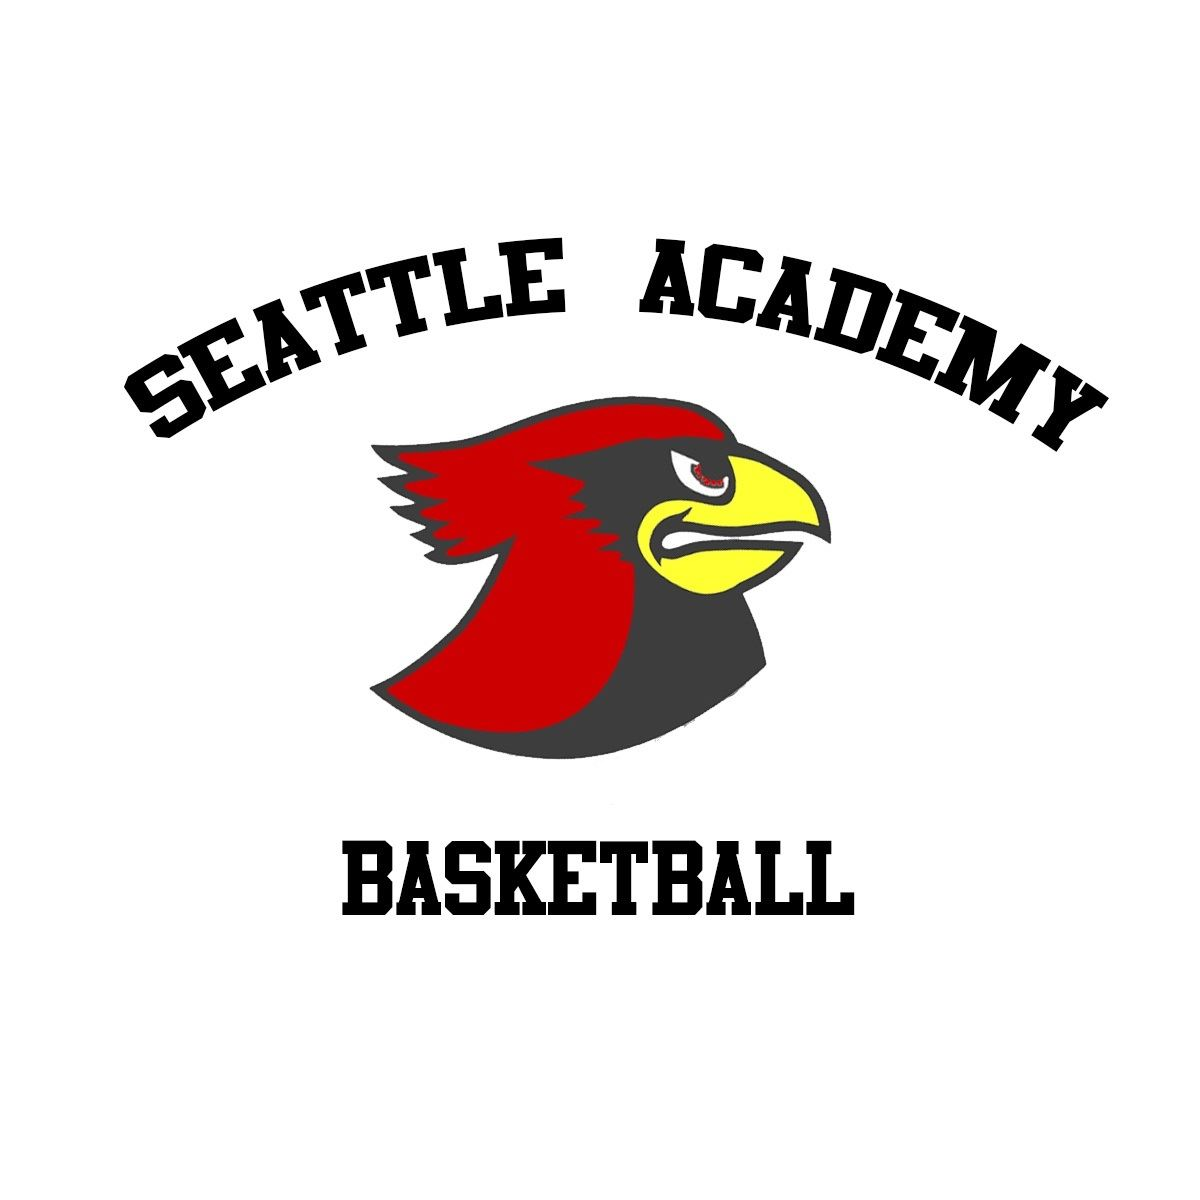 Seattle Academy - Cardinals